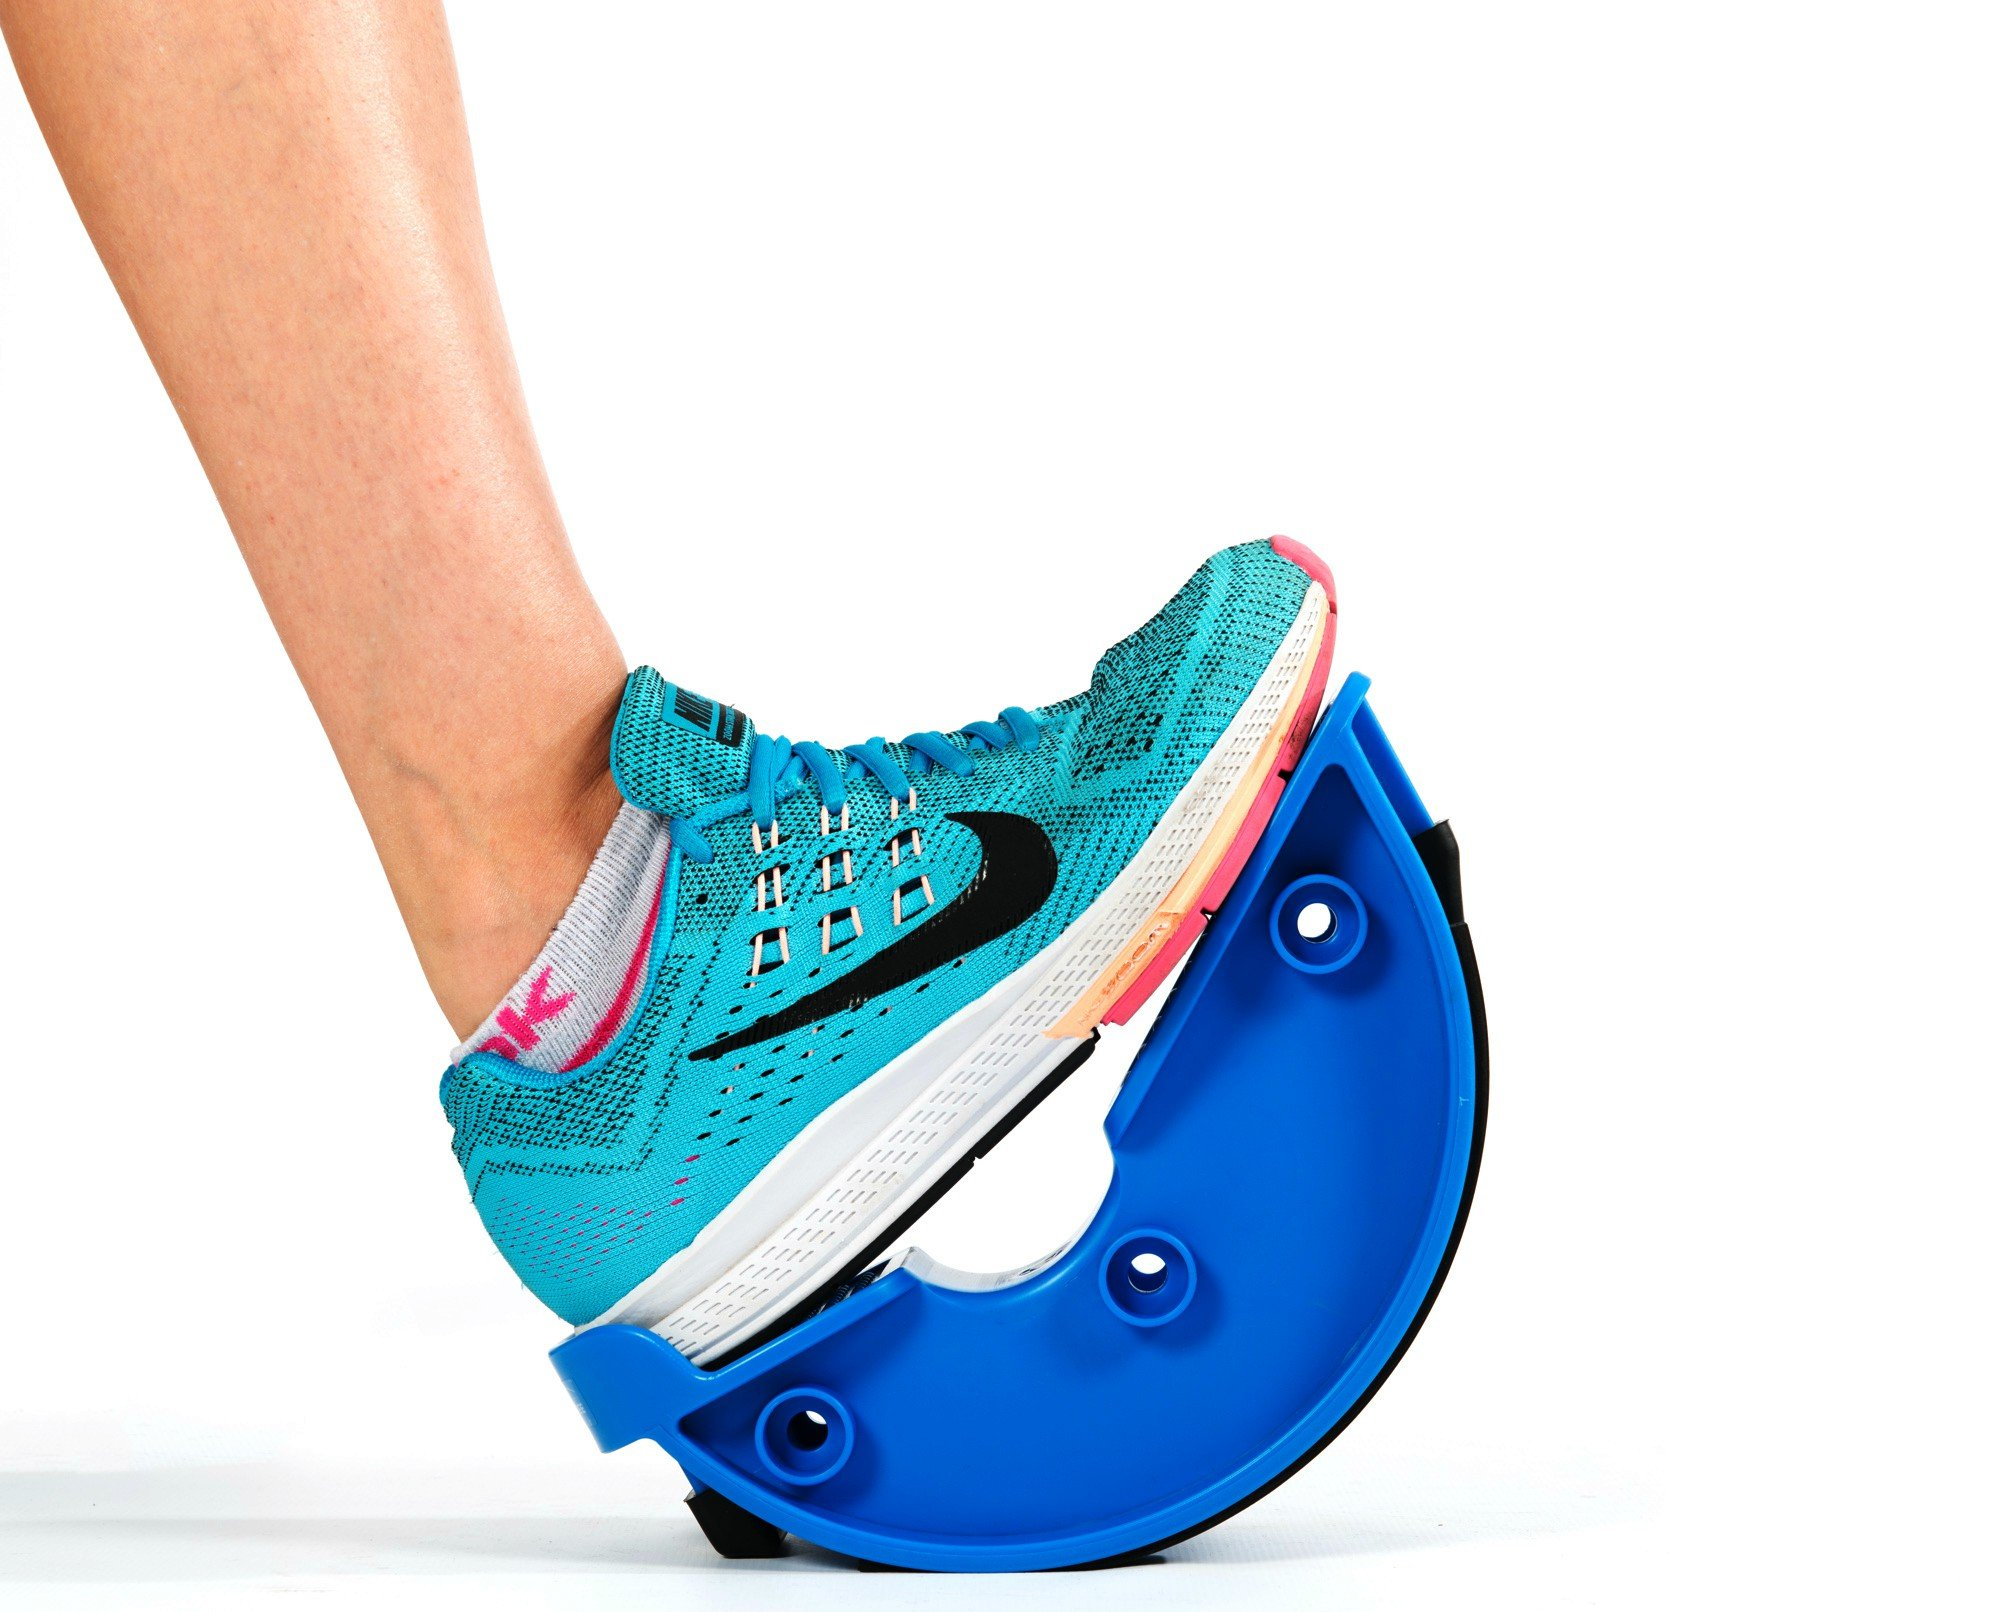 Foot Rocker. Durable Calf Stretcher Device for Achillies Tendonitis. Improve Plantar Fasciitis, Calf Flexibility, Ankle Mobility. Feet and Shin Splint Relief. Great for Physical Therapy, Athletes, Phy by Natural Chemistree (Image #4)